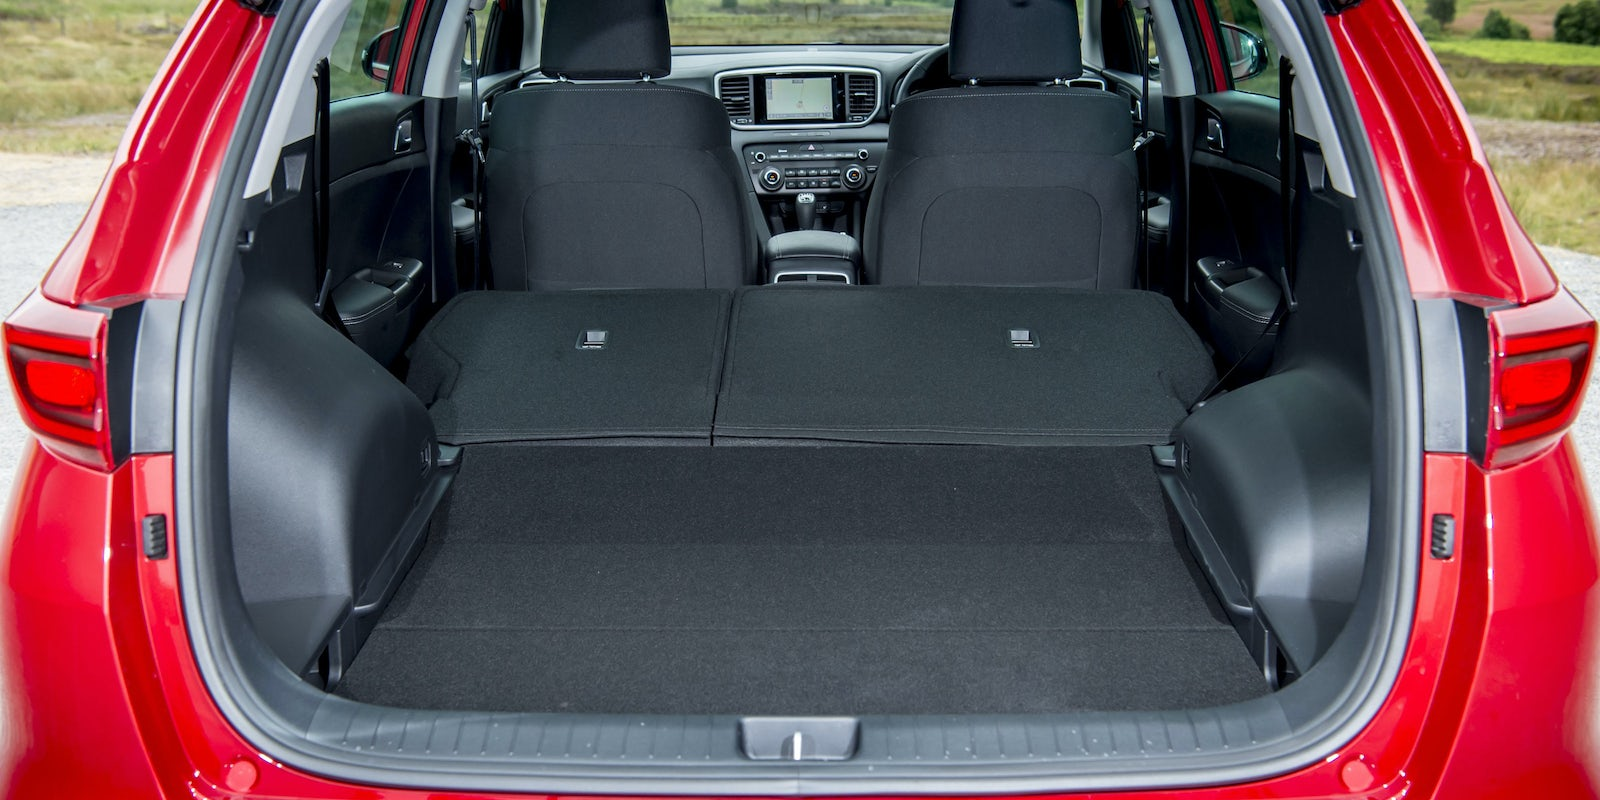 Range Rover Discovery Sport >> Kia Sportage Boot Space & Dimensions | carwow